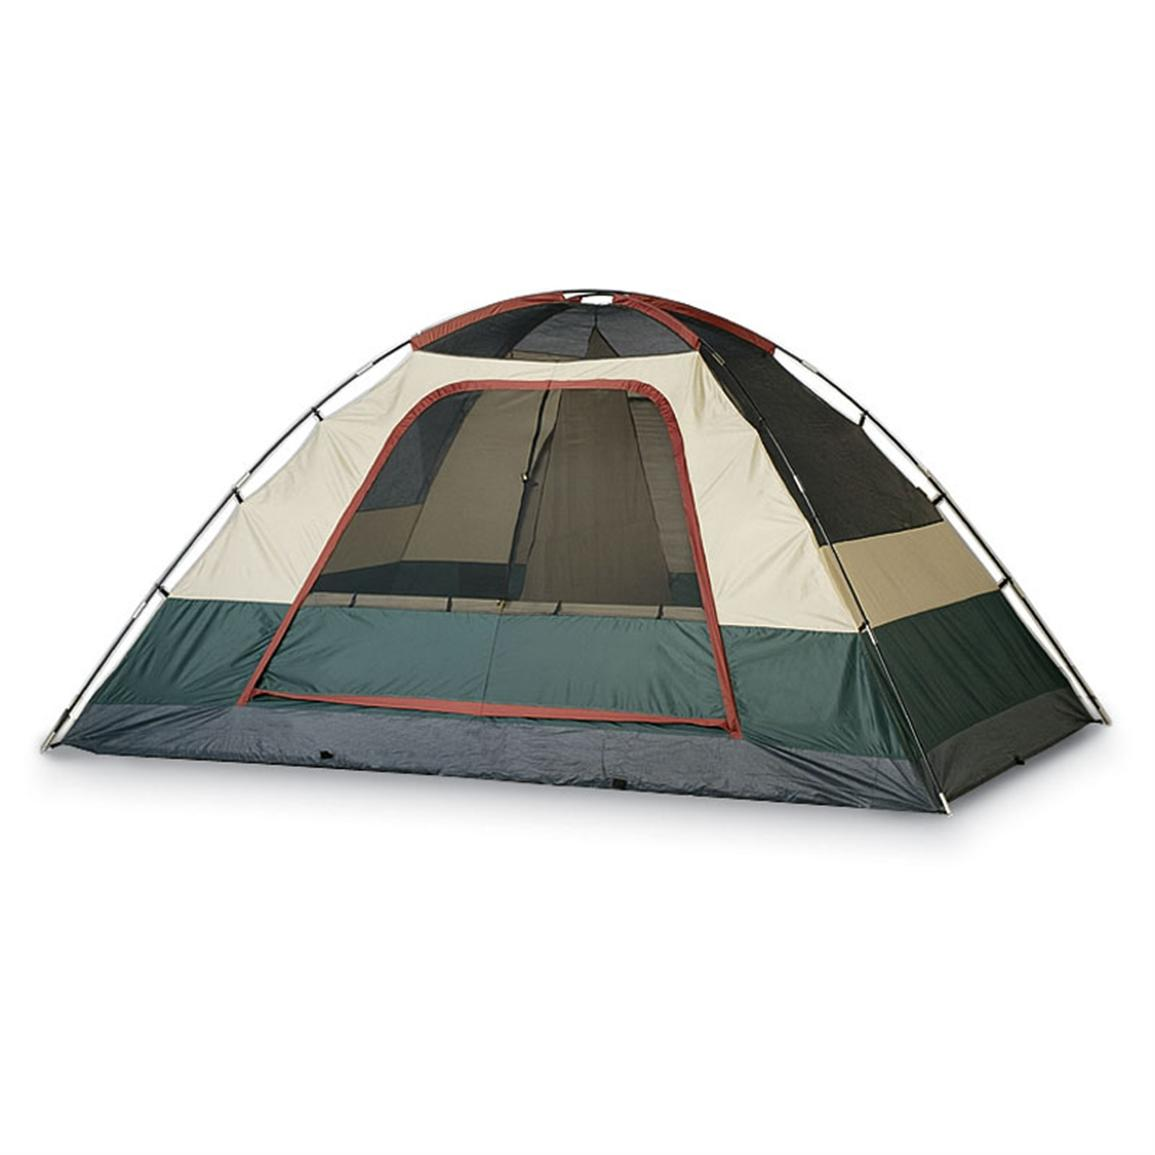 3 room tent instructions